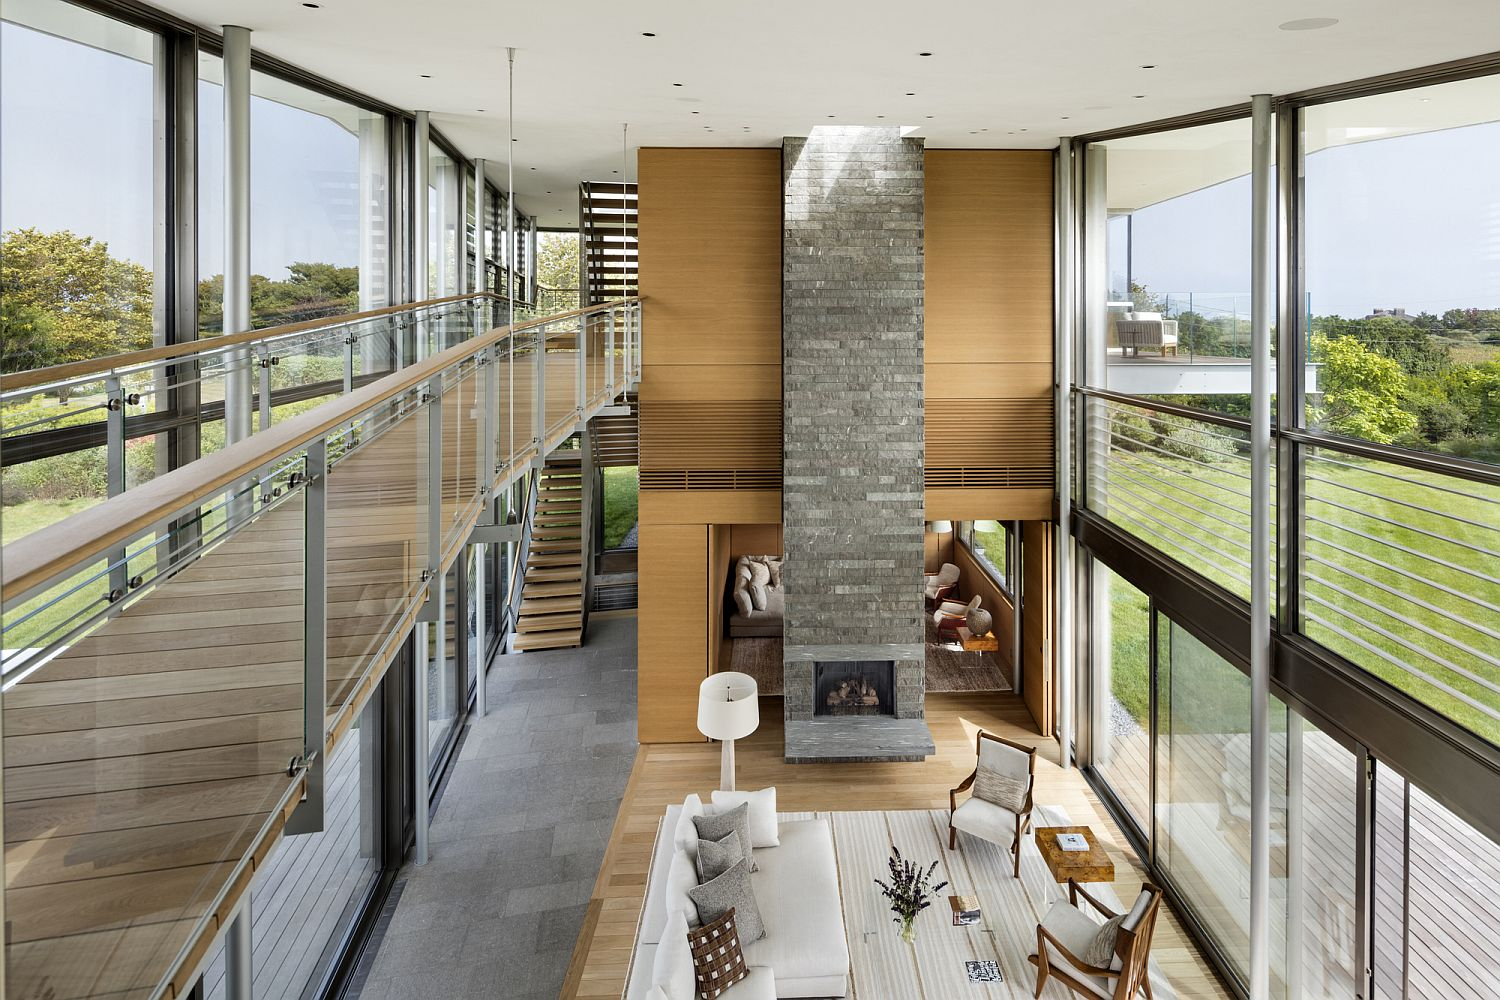 Walkway with silver-gray woooden planks runs throughout the house and outdoors